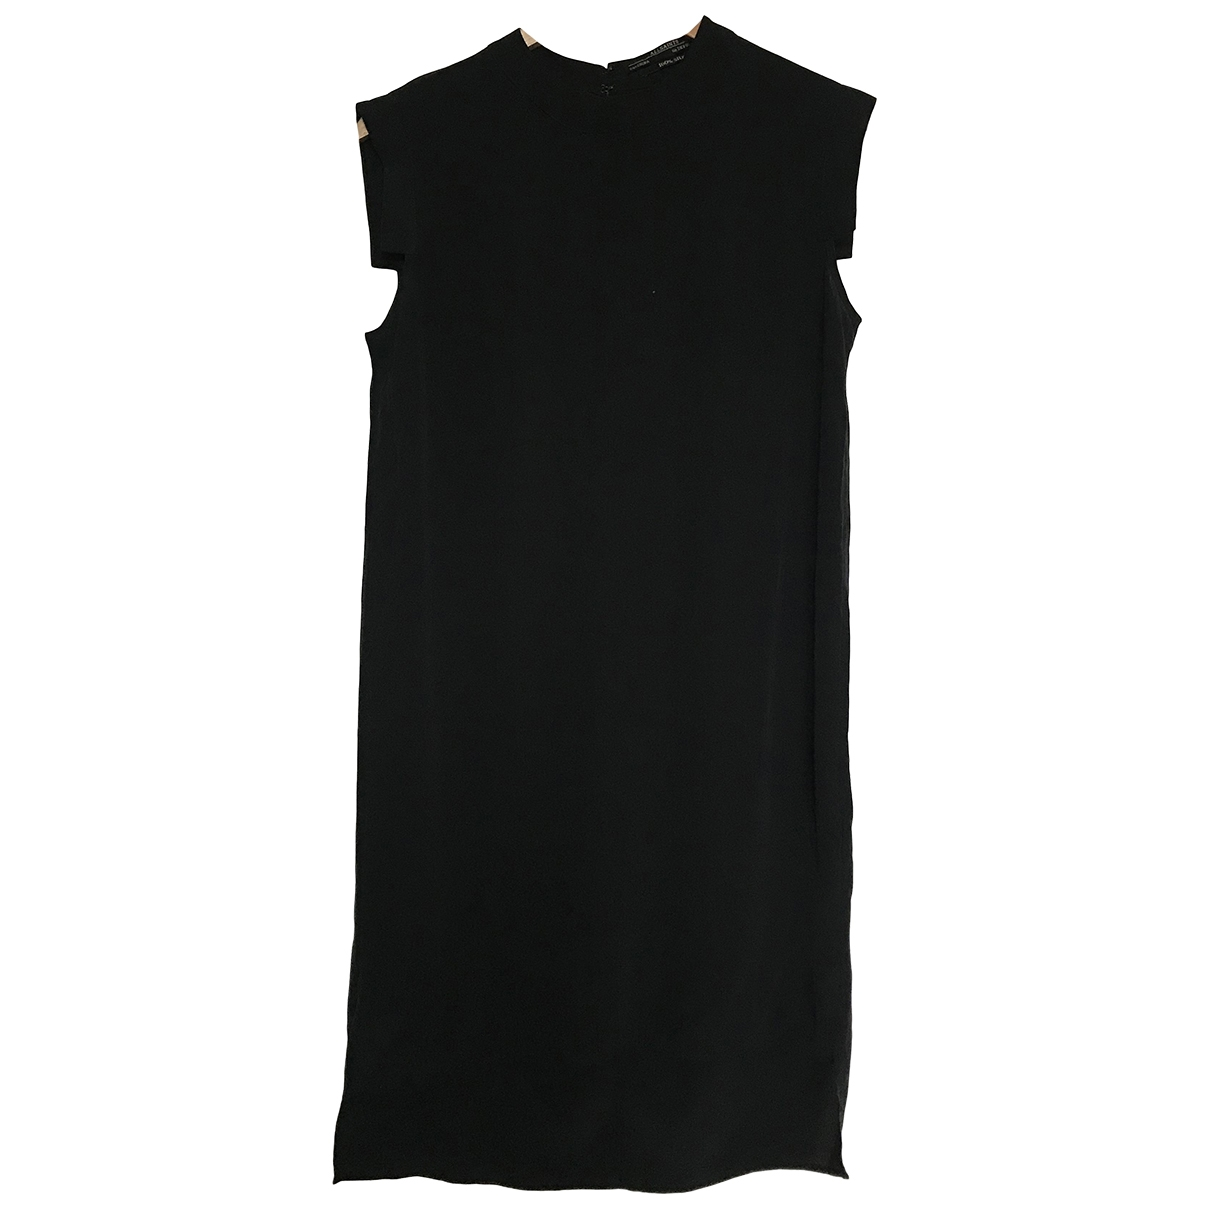 All Saints \N Black Silk dress for Women 8 UK